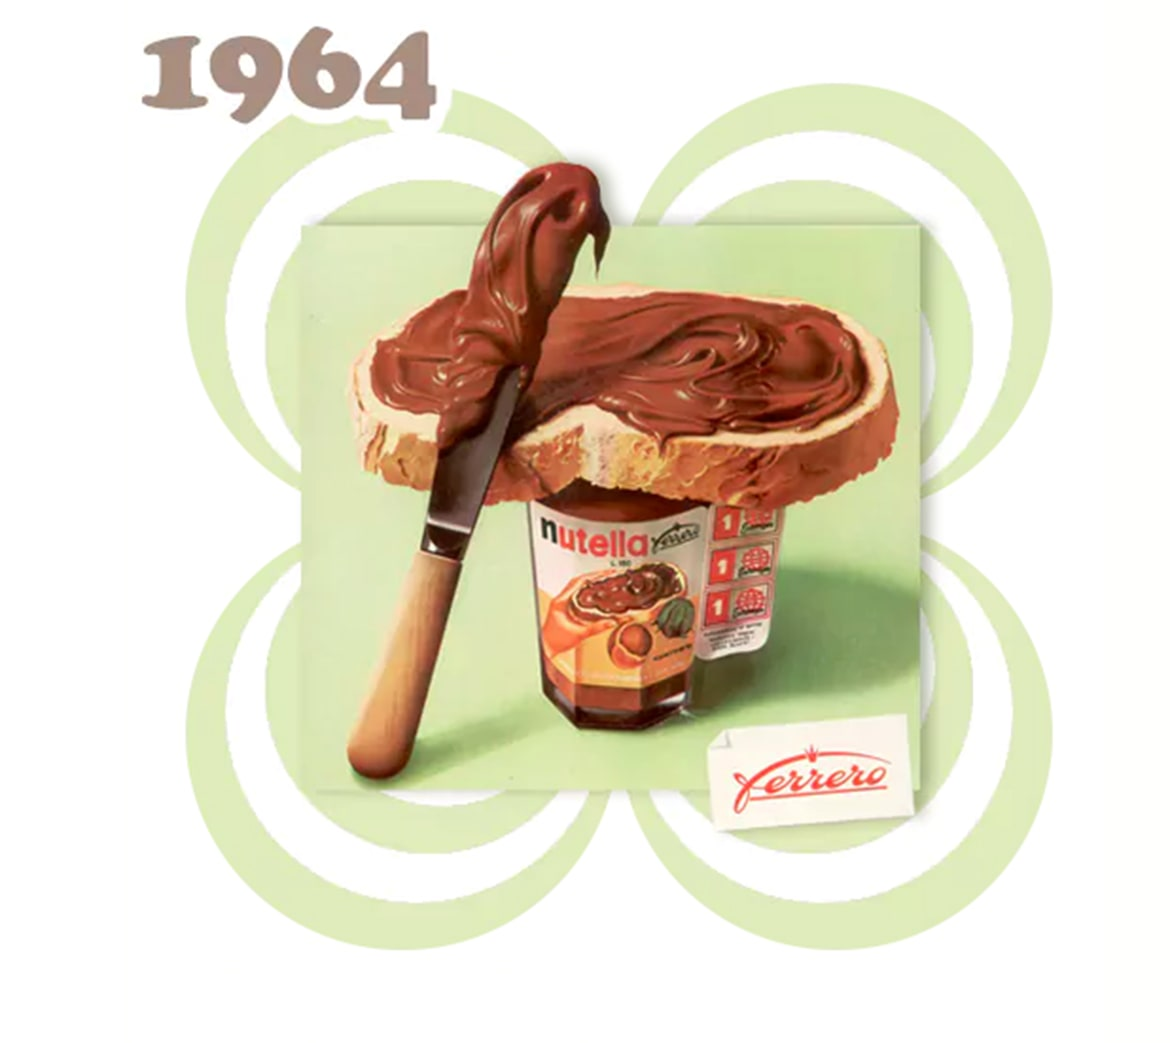 THE FIRST NUTELLA JAR. Credits: Nutella website. https://www.nutella.com/it/it/la-storia-di-nutella#1964